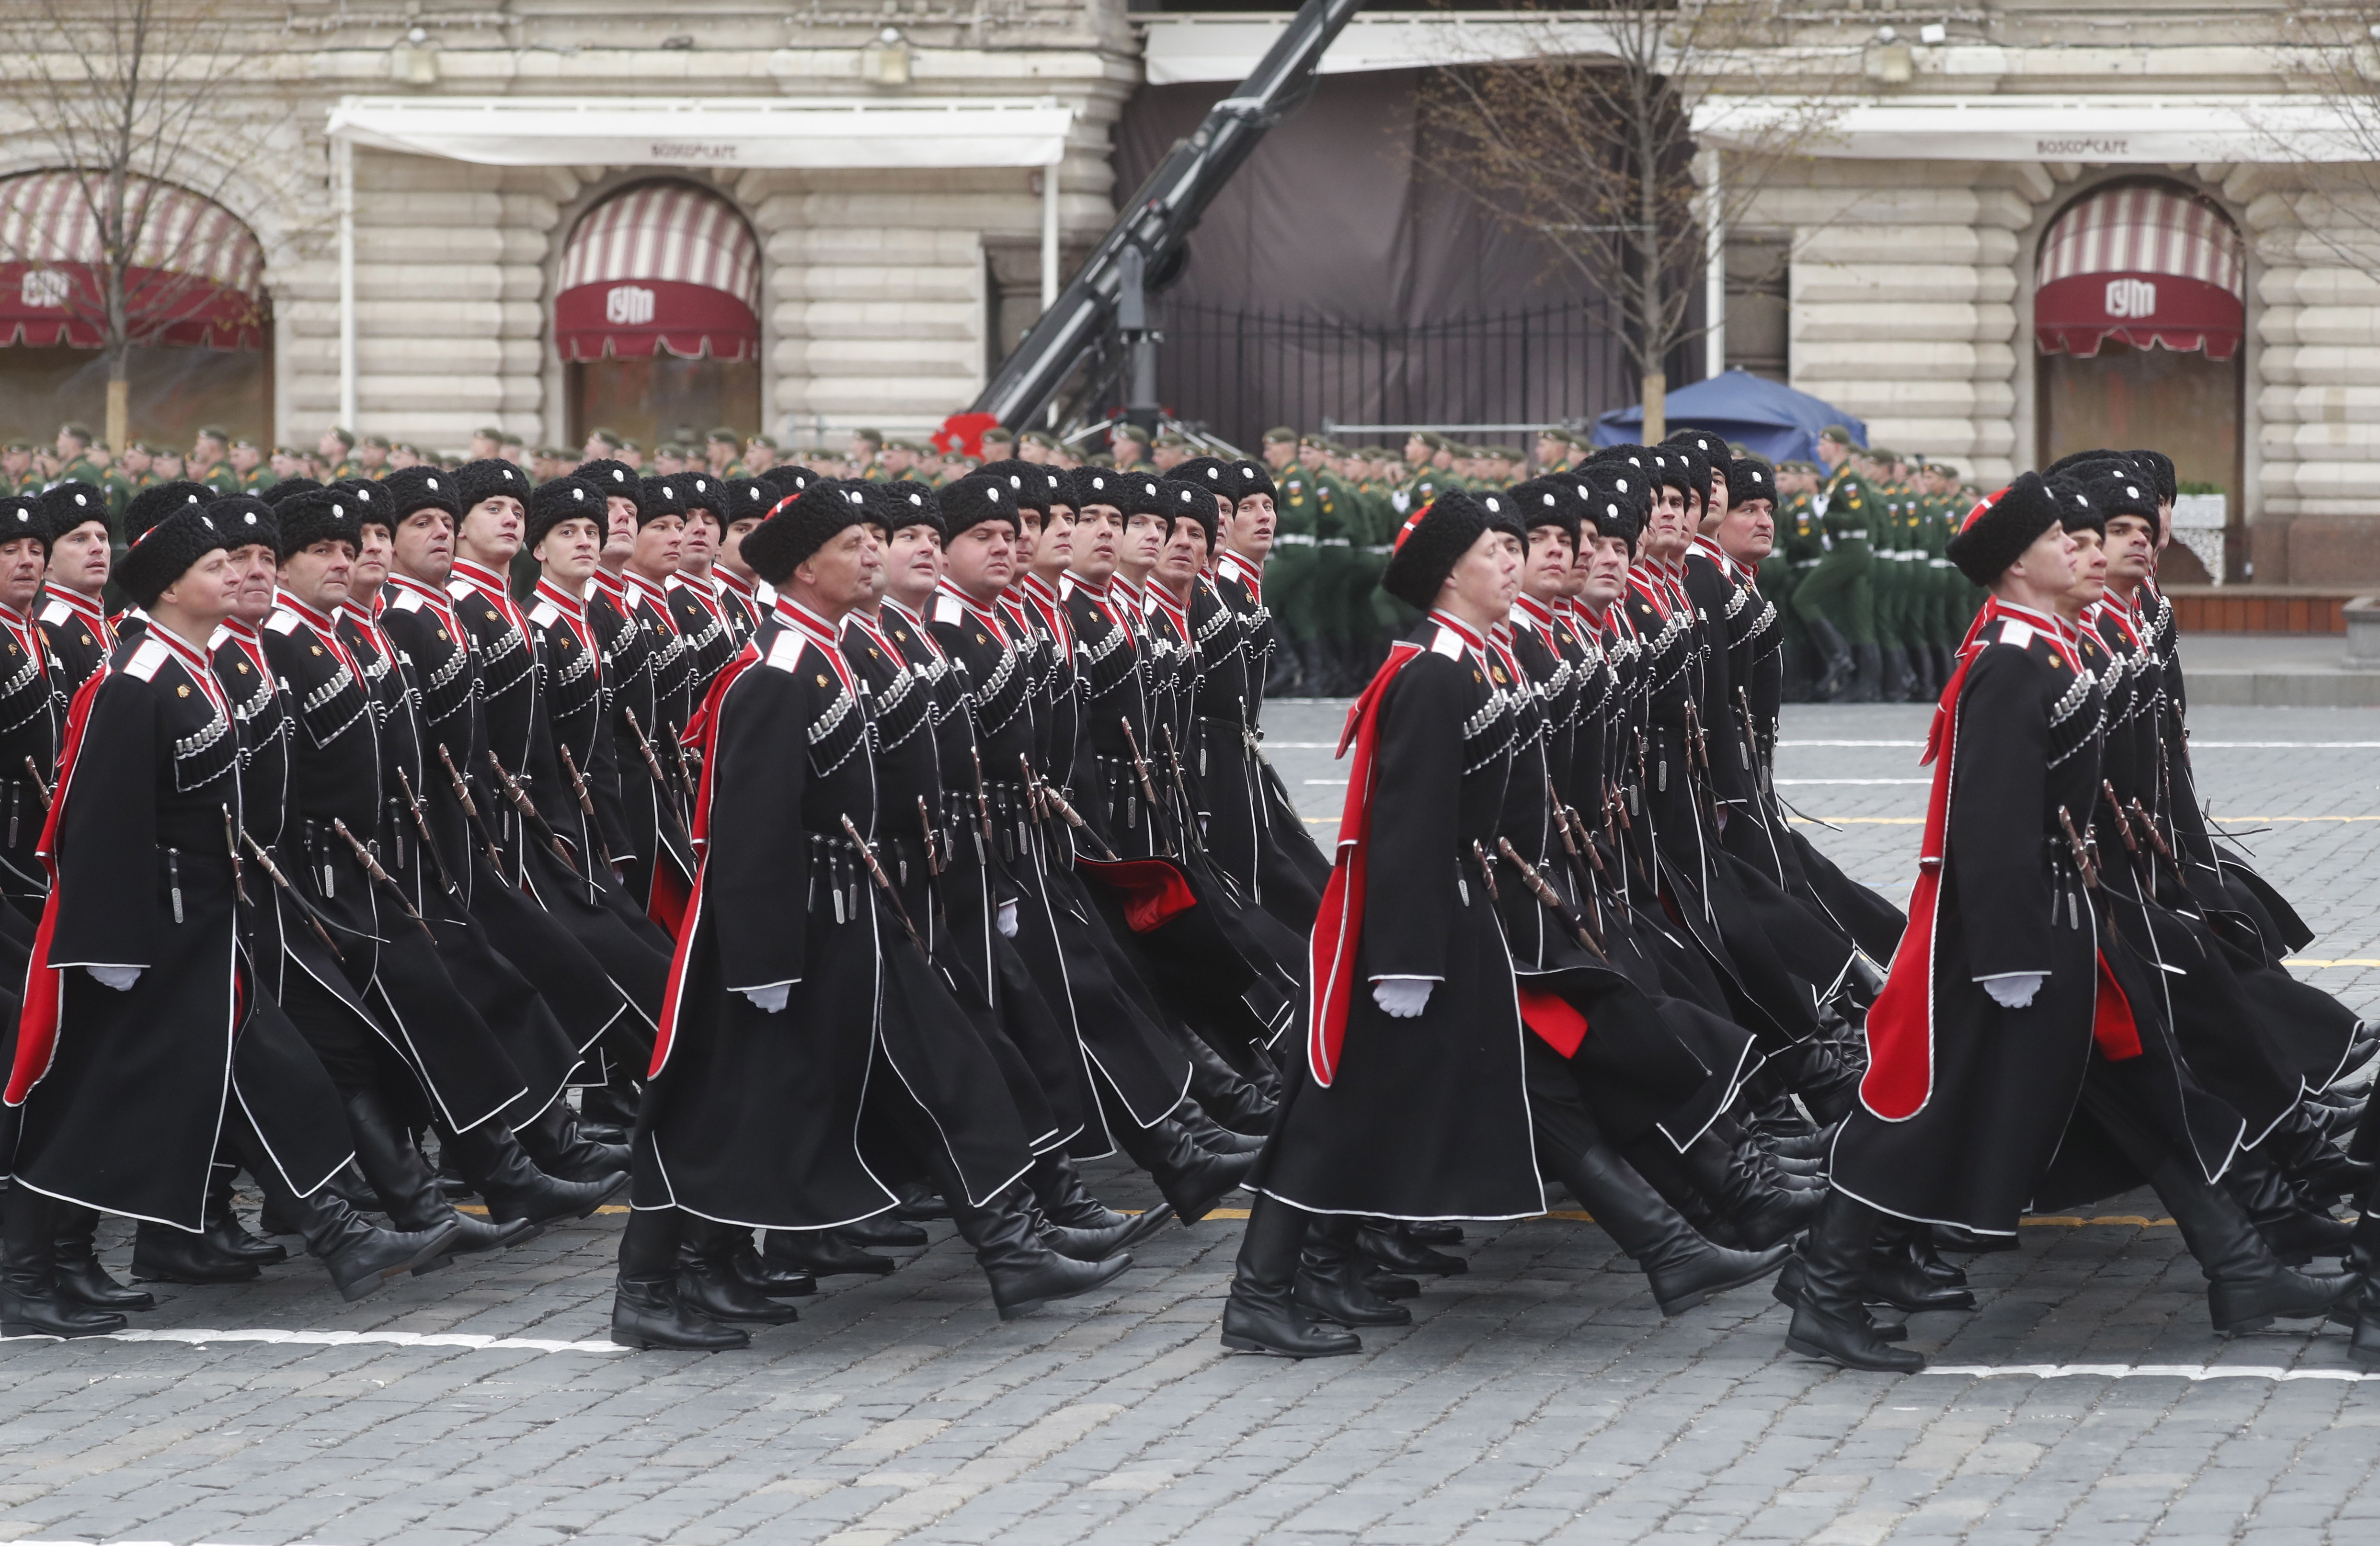 Victory Day Military parade in the Red Square in Moscow